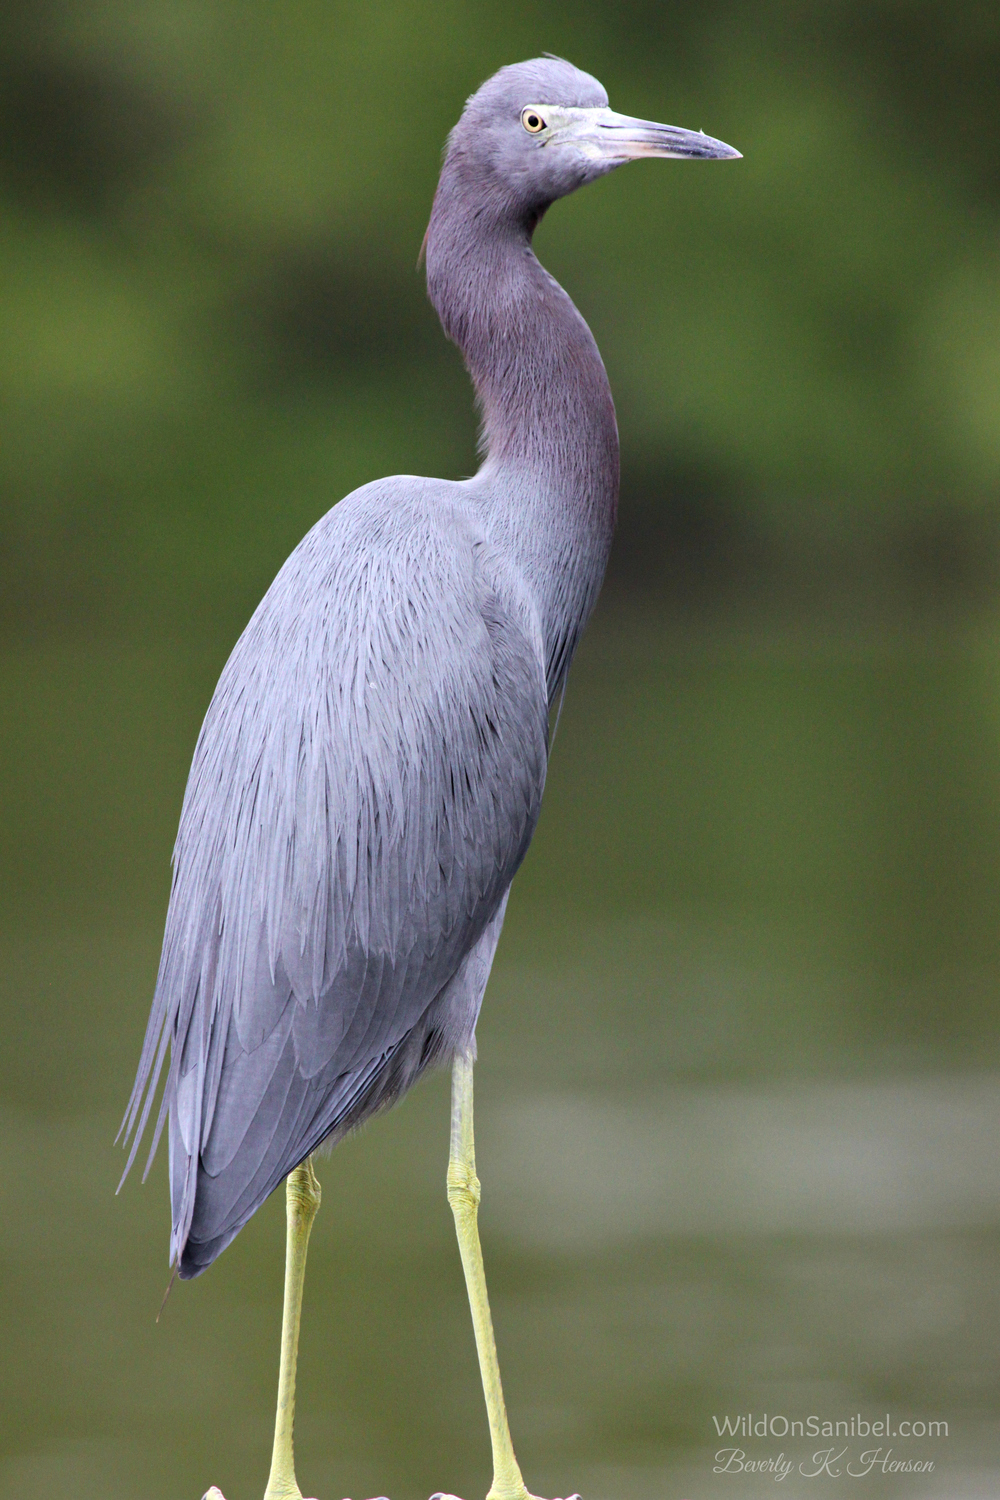 This Little Blue Heron posed while I took many pics!